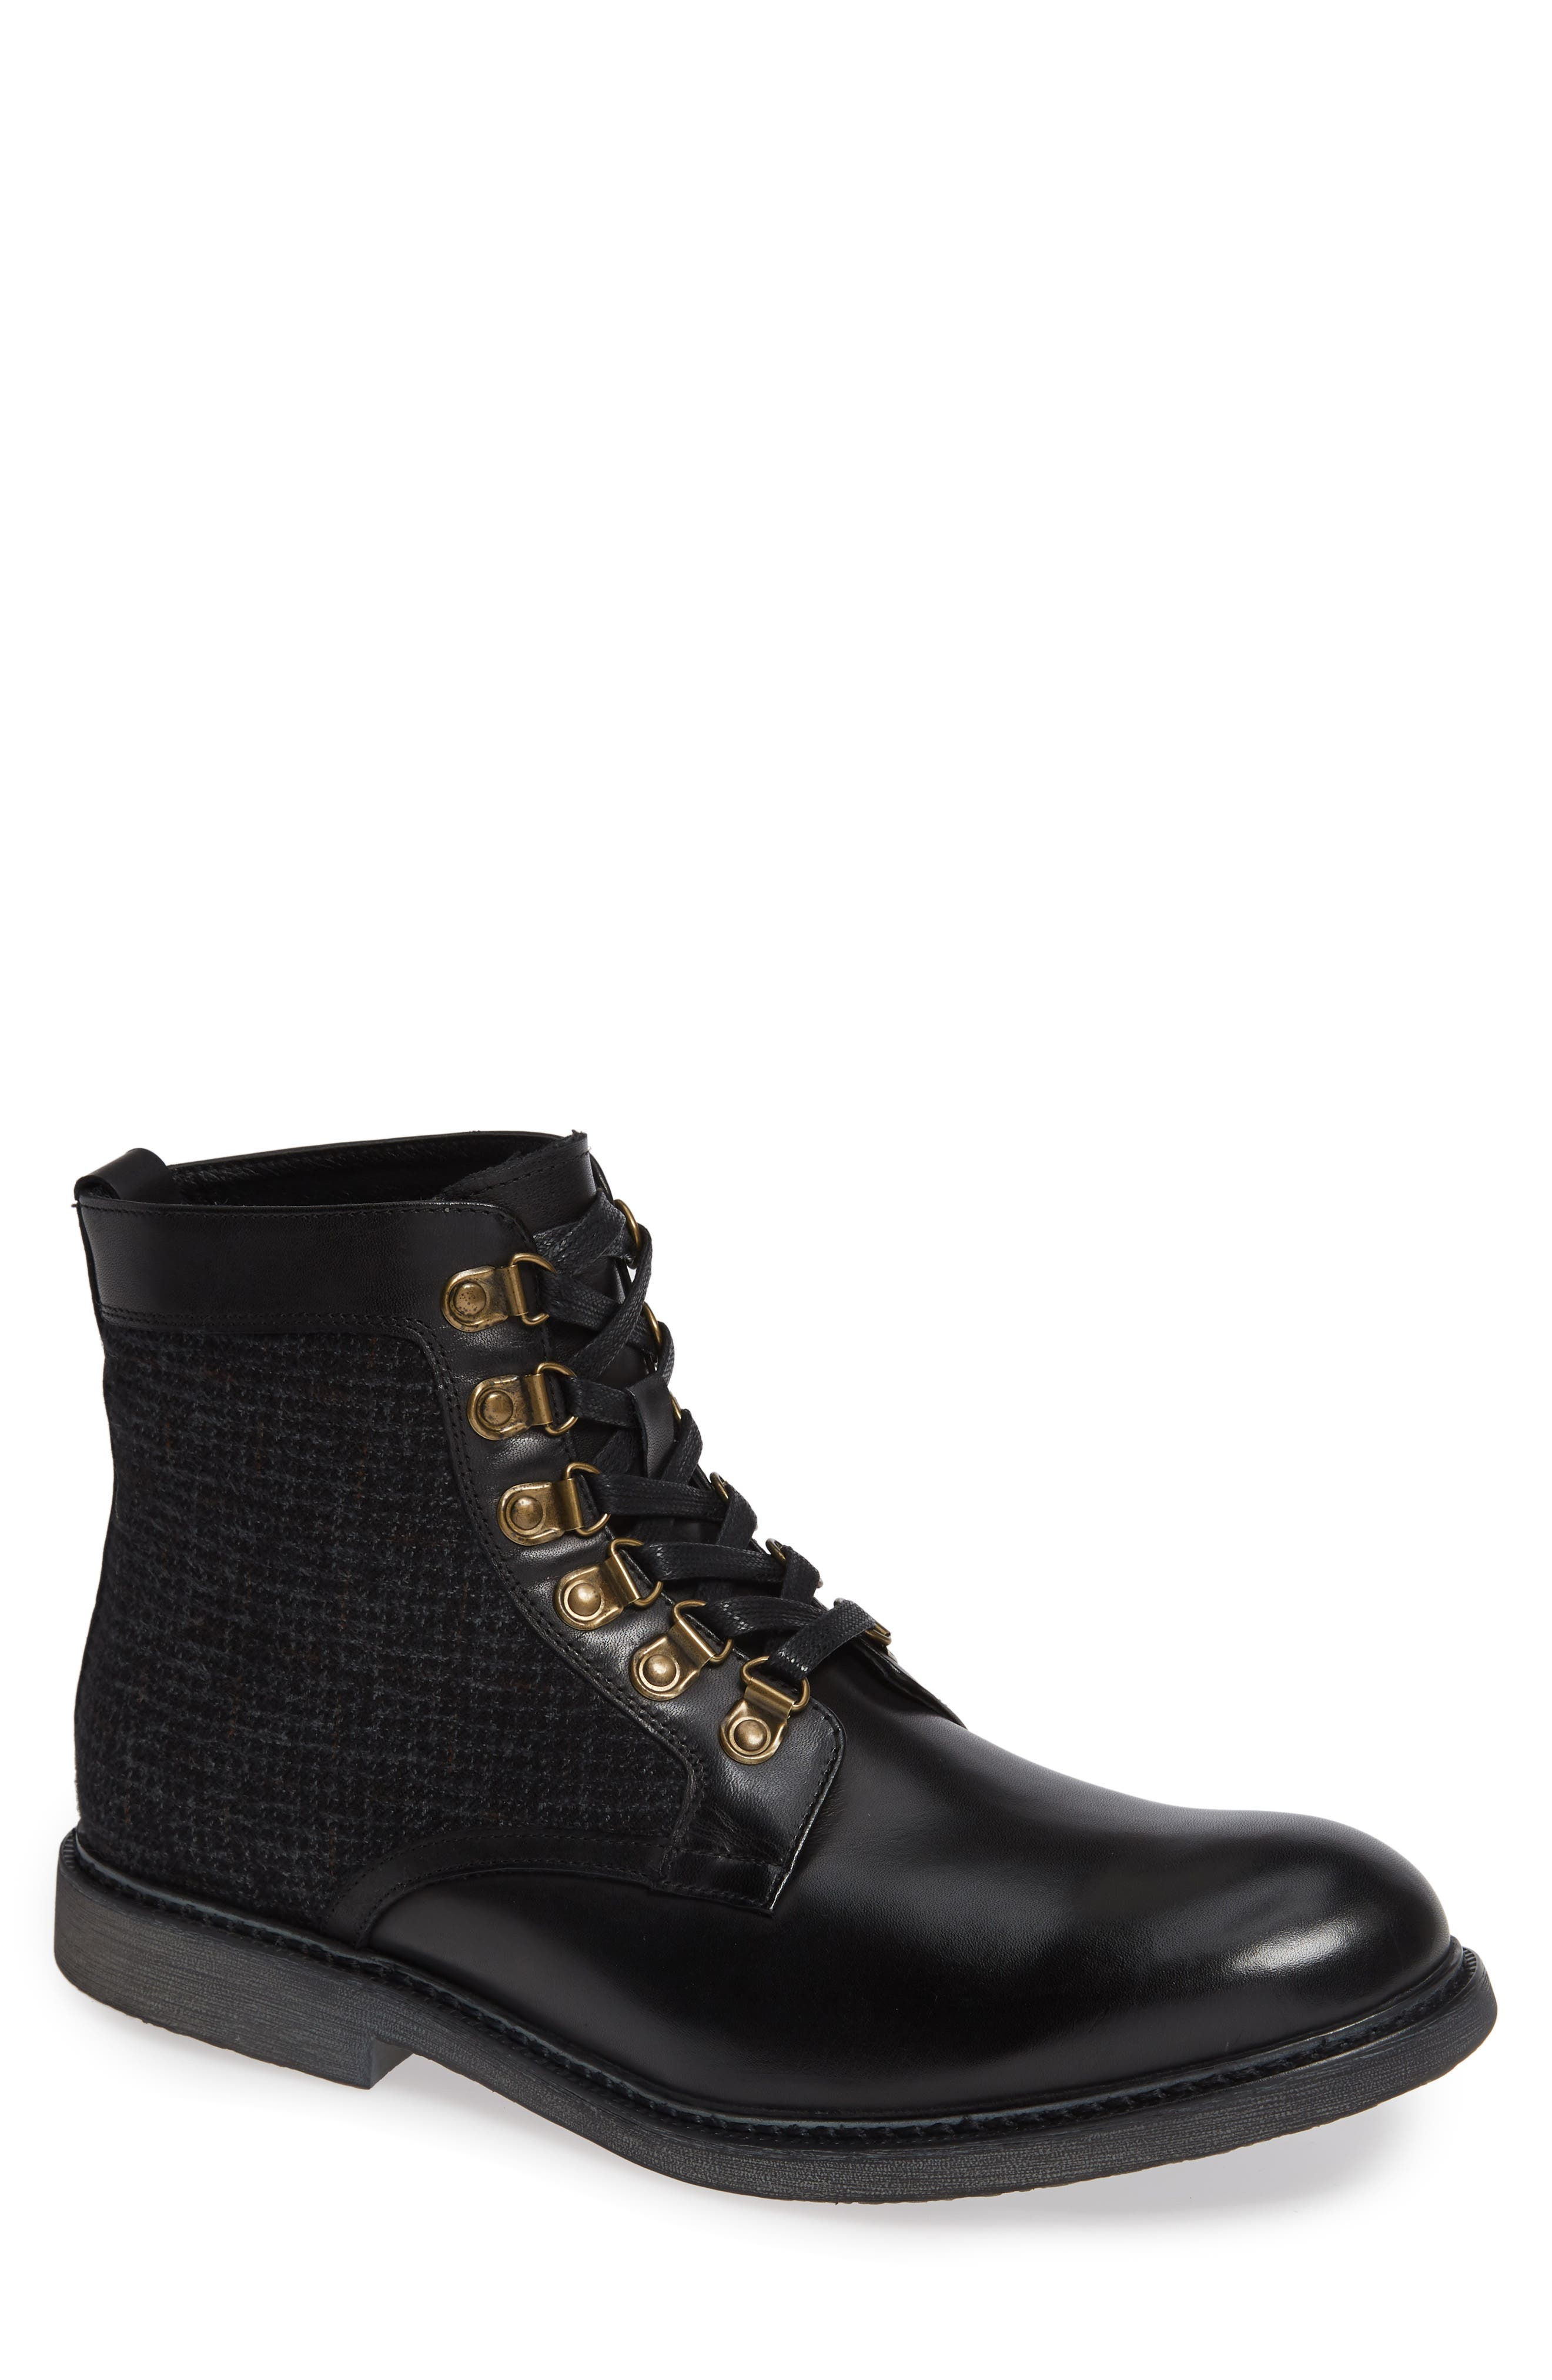 ENGLISH LAUNDRY Bradford Textured Suede Boot in Black